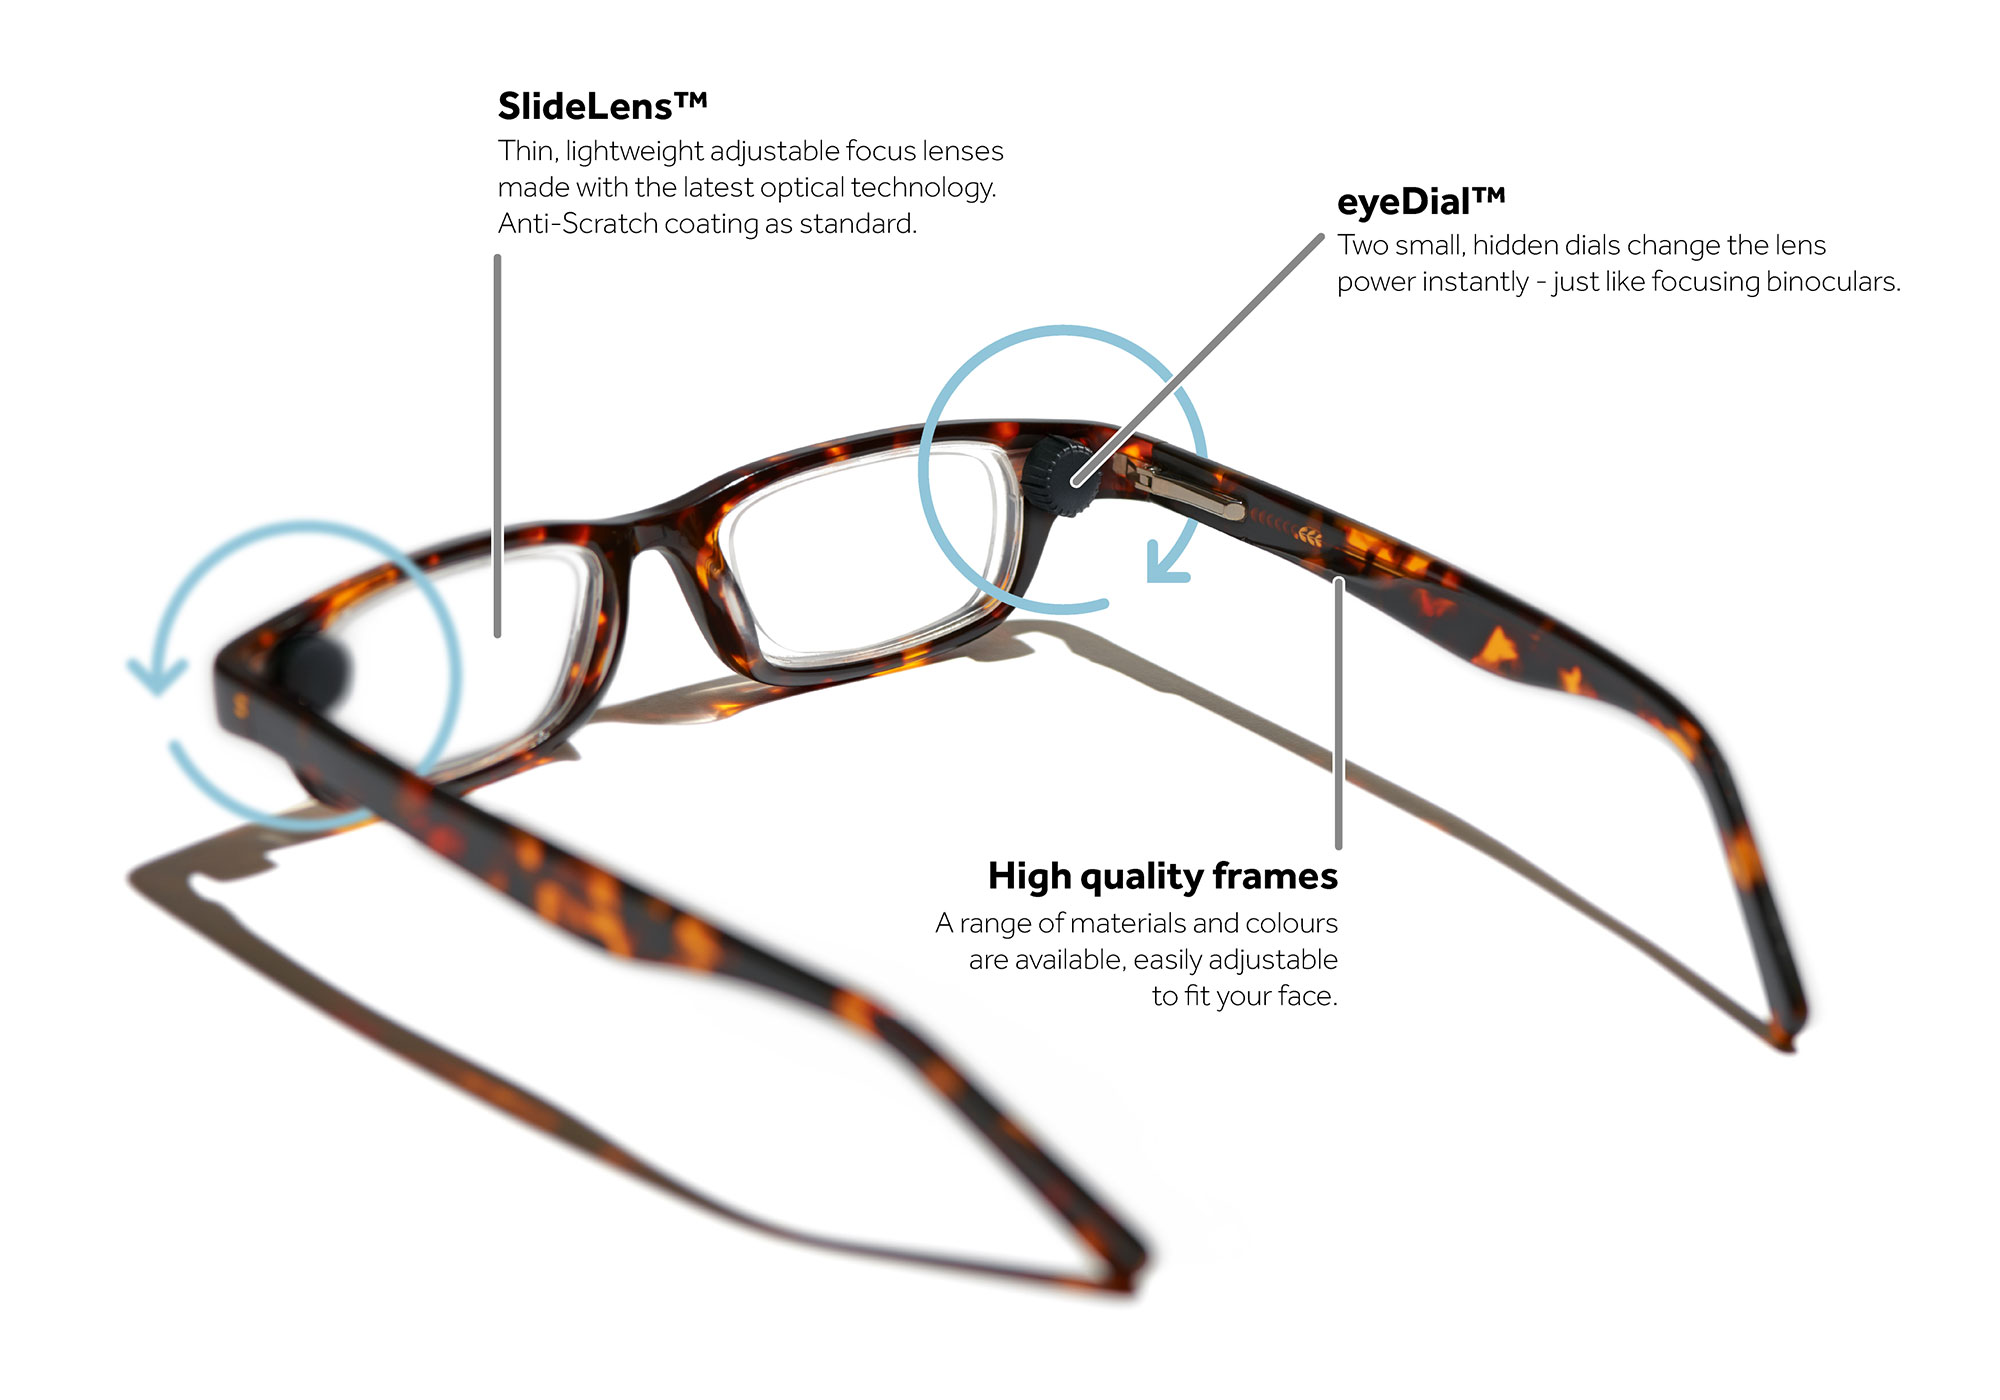 Just frames for glasses - Your New Everything Glasses Just Turn The Dials To Adjust Focus